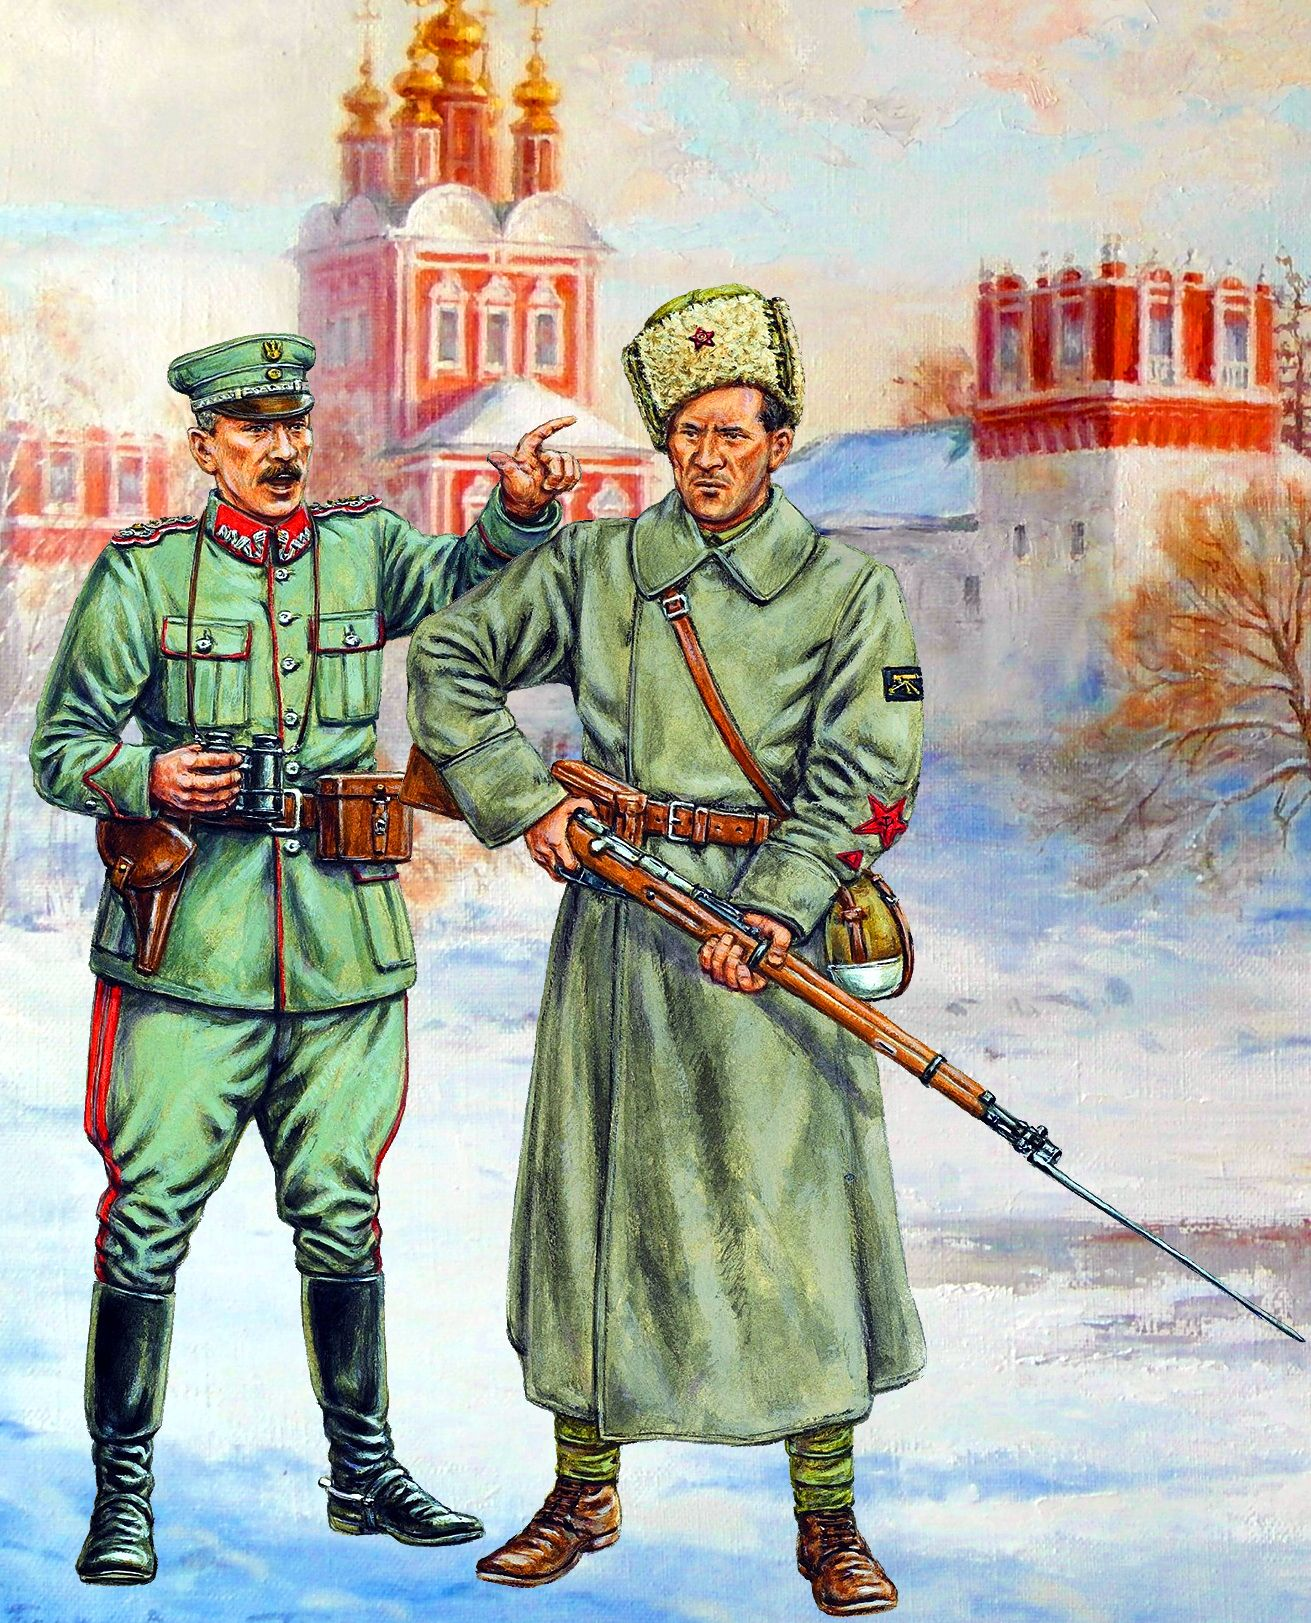 3rd Siedlec Revolutionary Inf Regt, Red Army; Lida